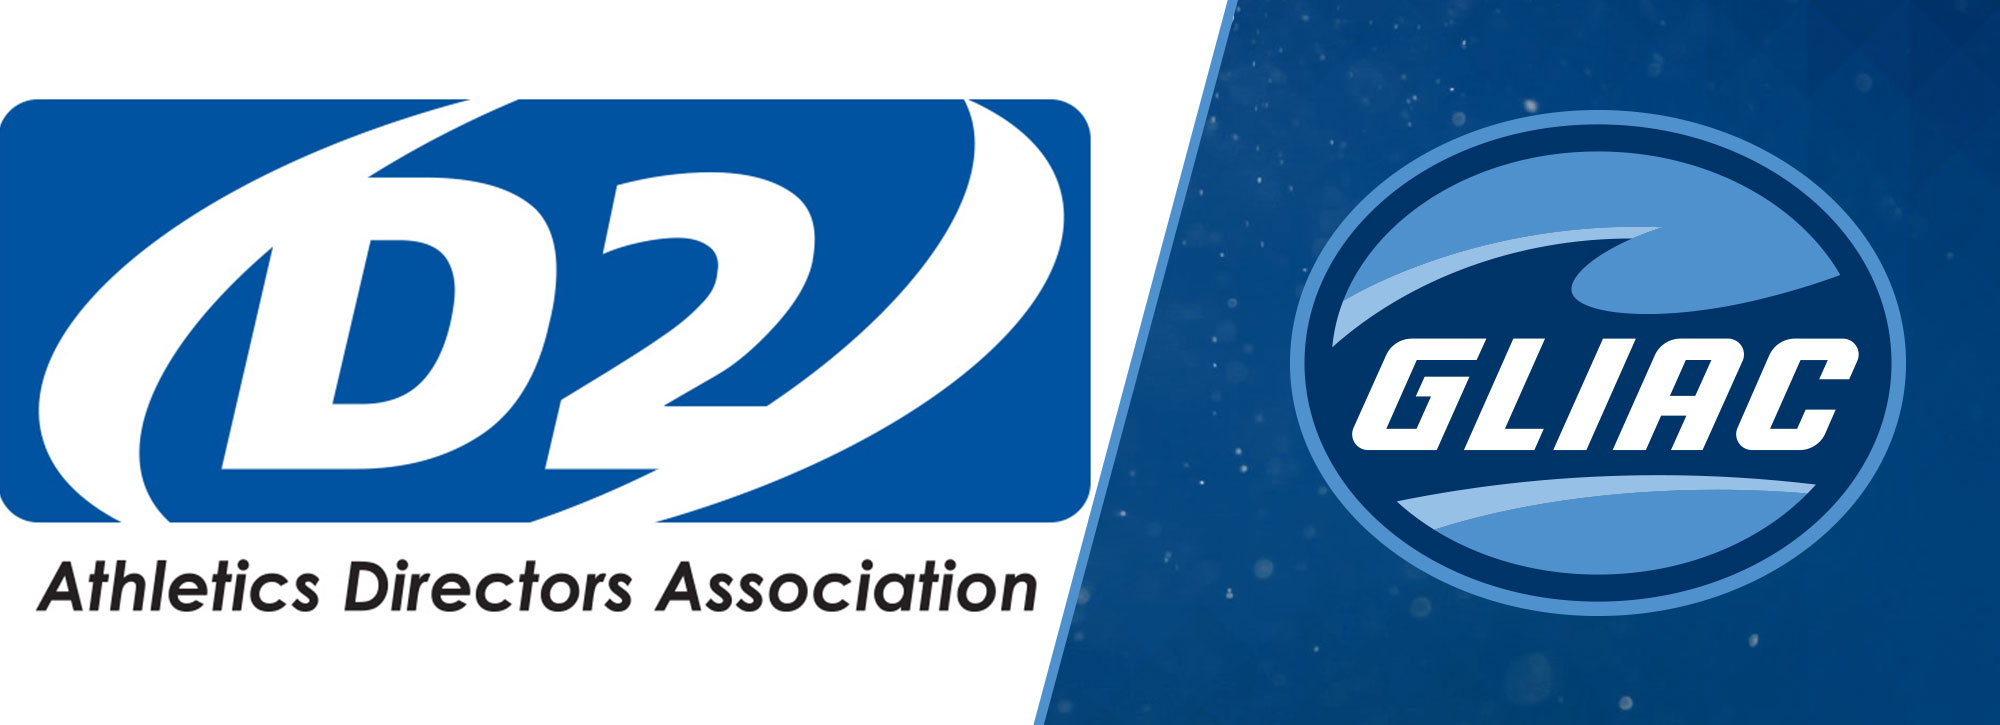 Division 2 ADA Announces 646 GLIAC Academic Achievement Award Recipients